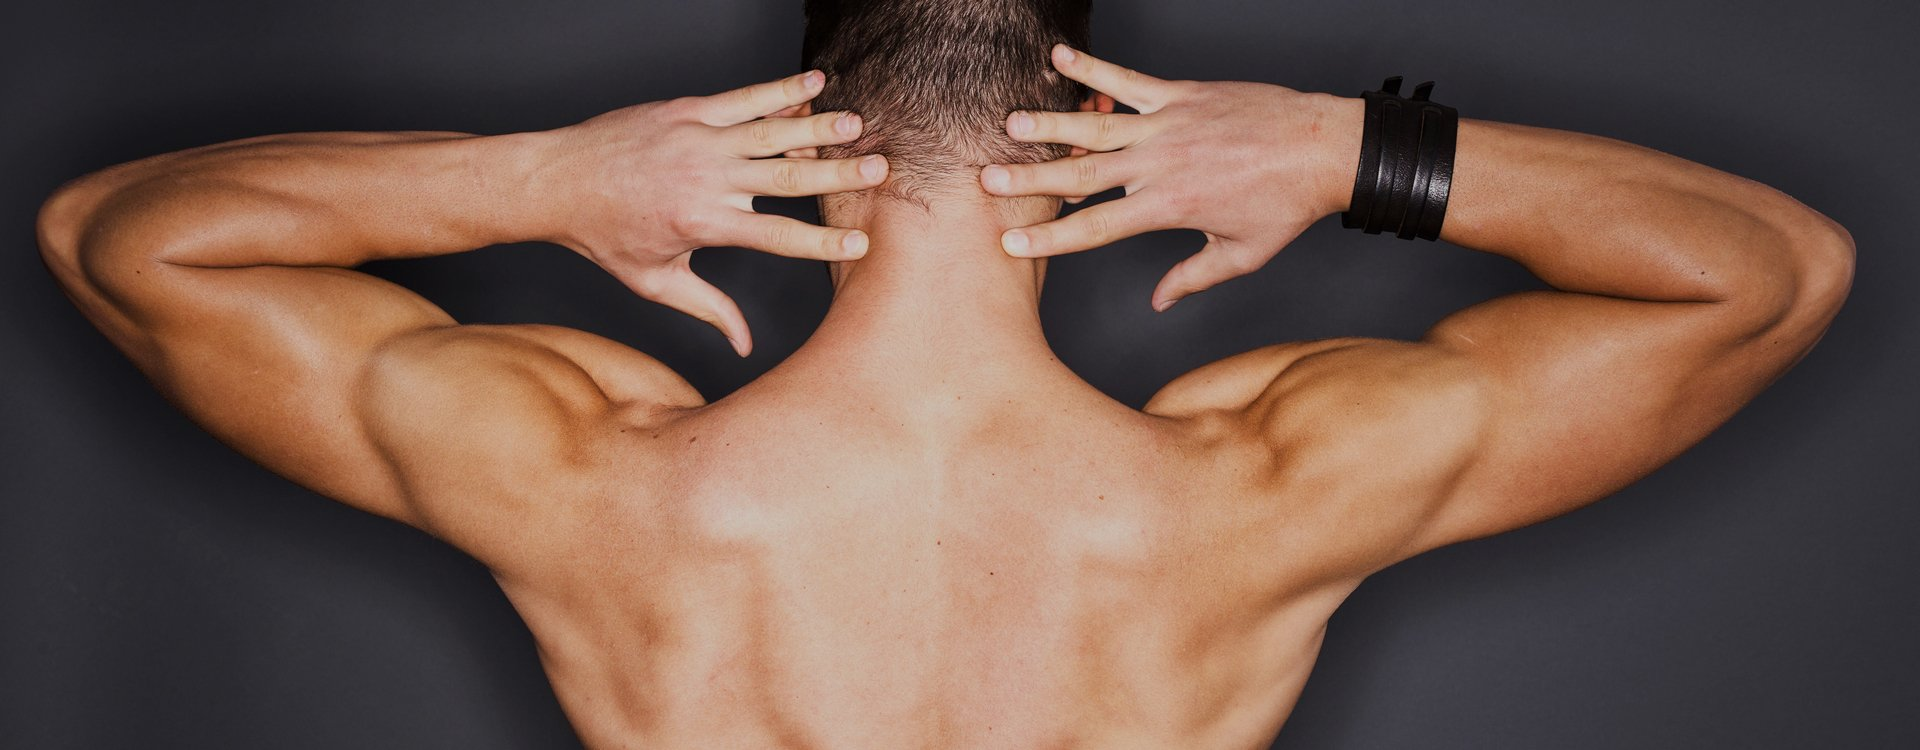 Put your back into your workout: Trapezius muscles